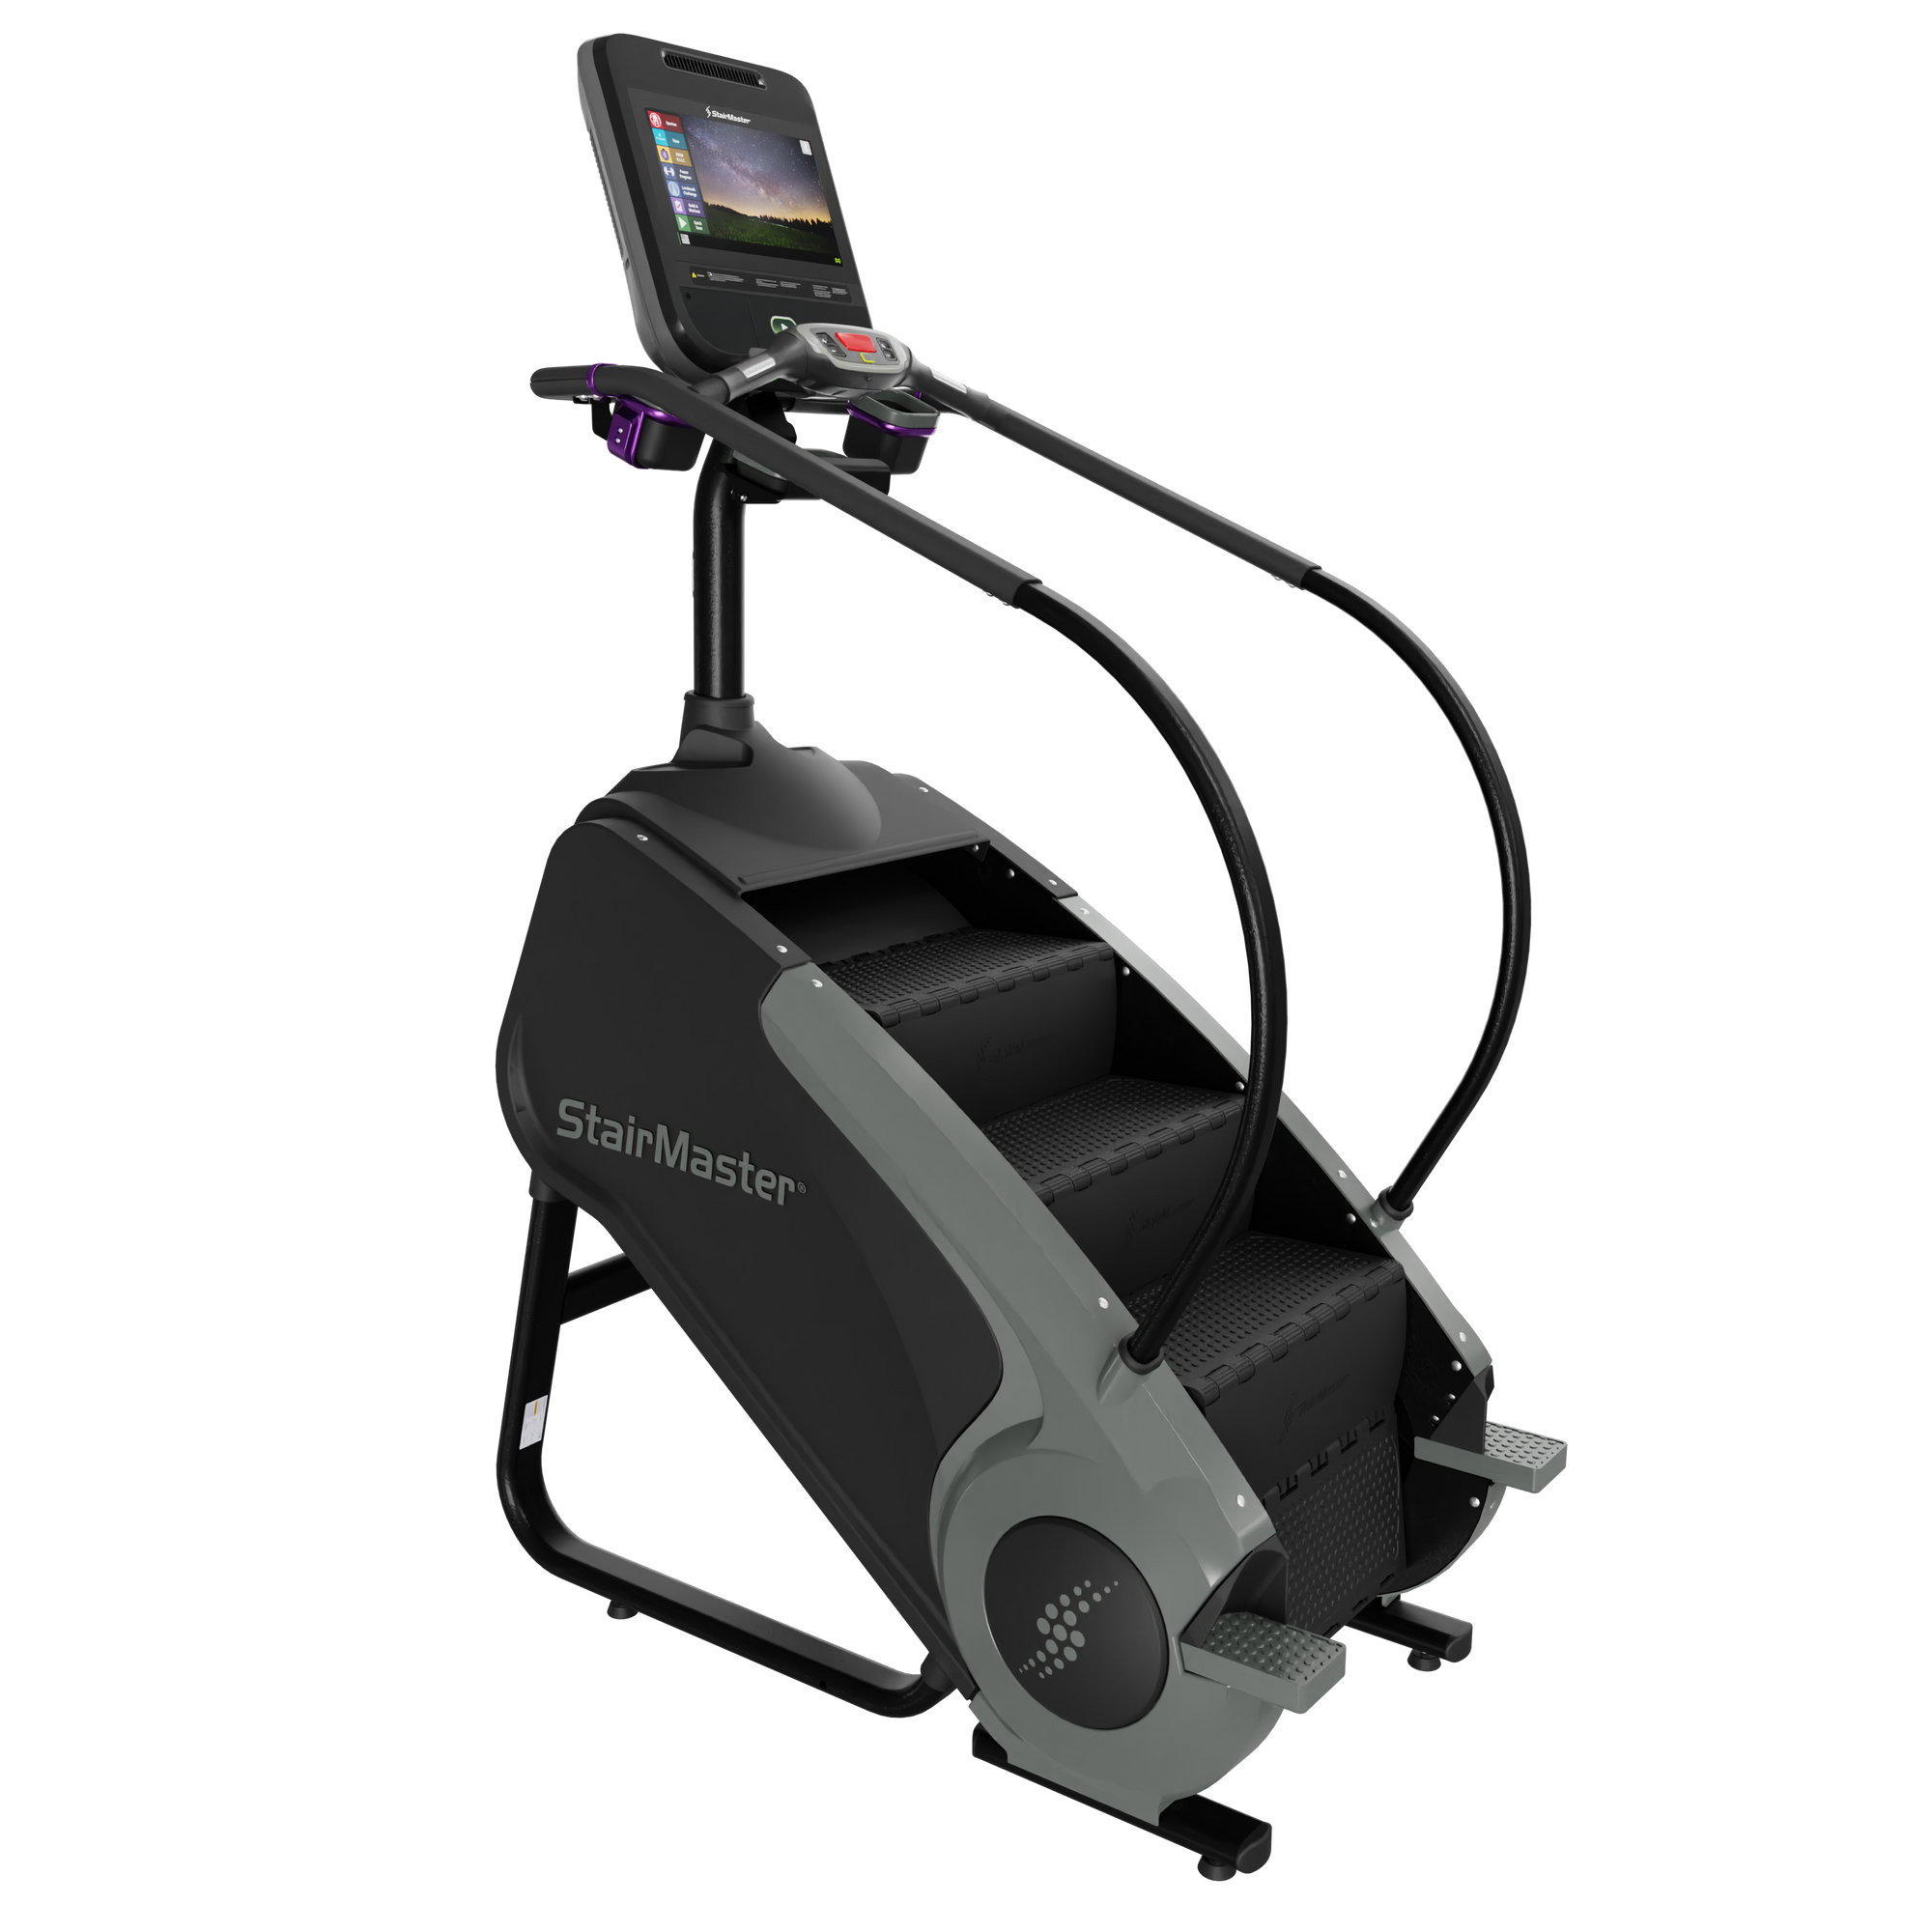 New 2019 StairMaster 8 Series Gauntlet Stepmill with 15-inch ATSC Embedded Console